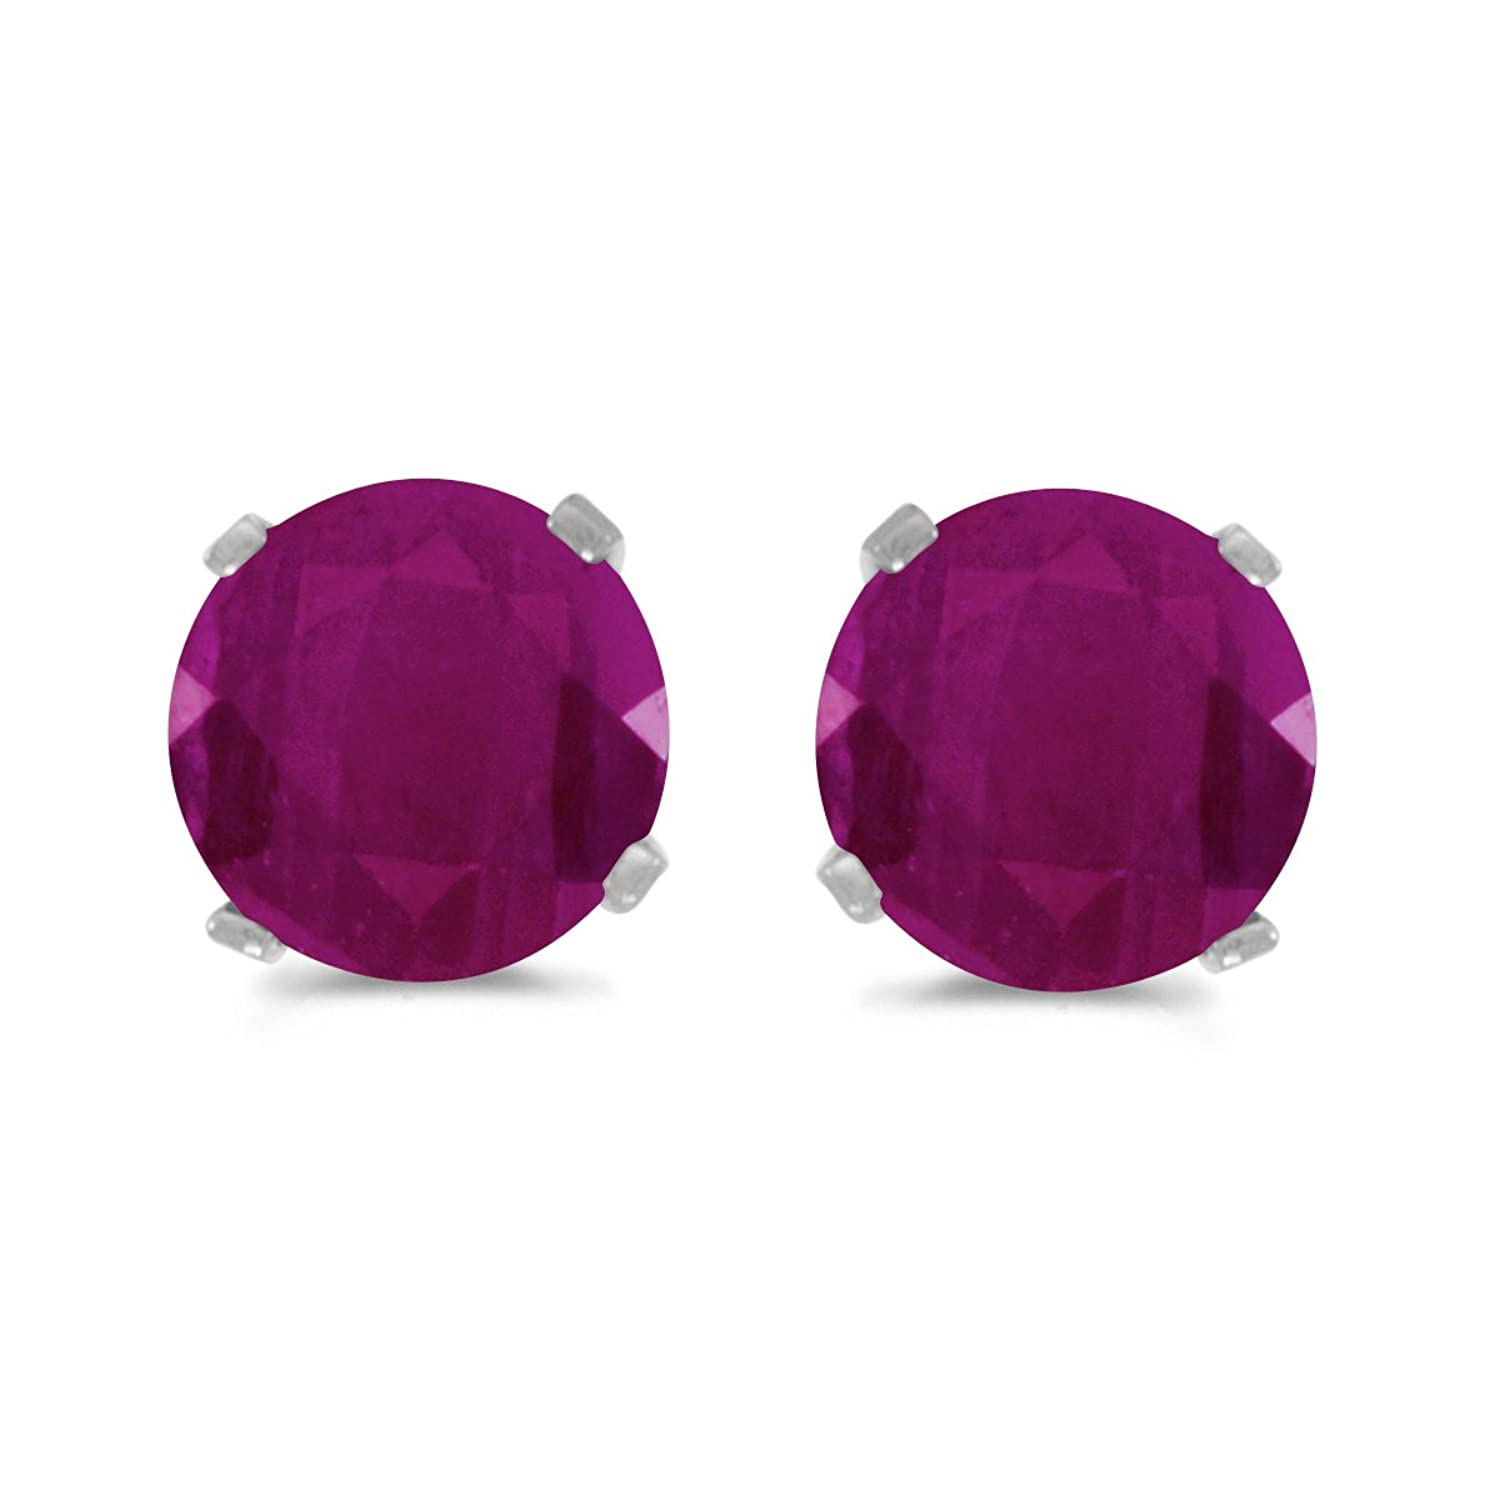 1 Carat Total Weight Natural Round Ruby Stud Earrings Set in 14k White Gold